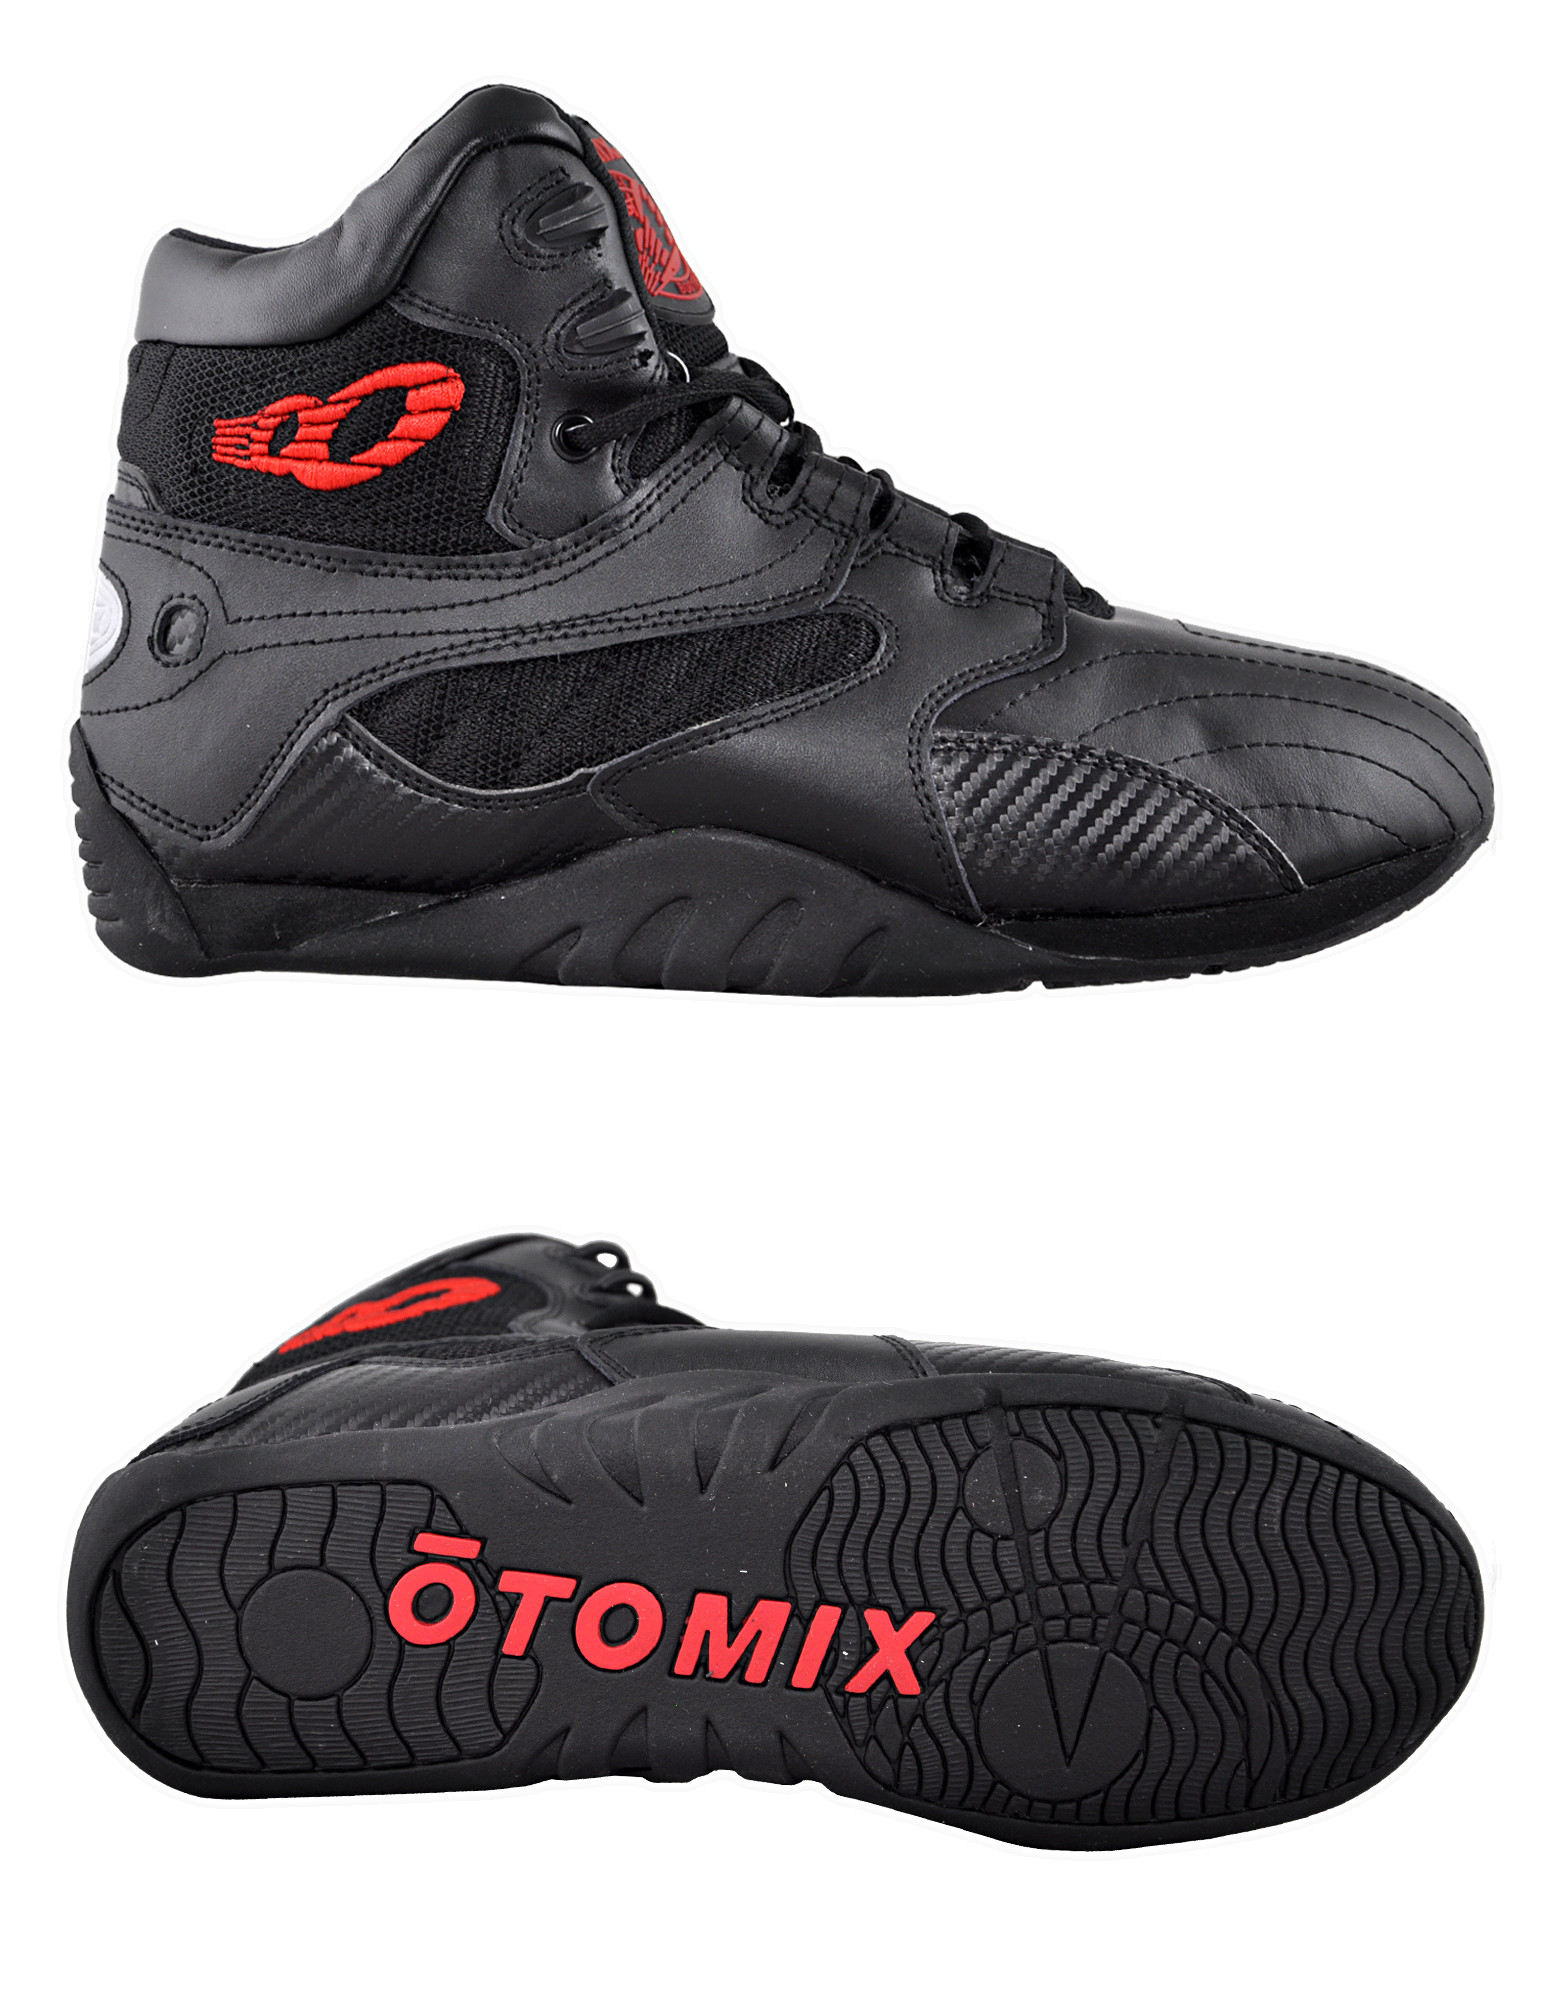 Otomix Shoes Uk